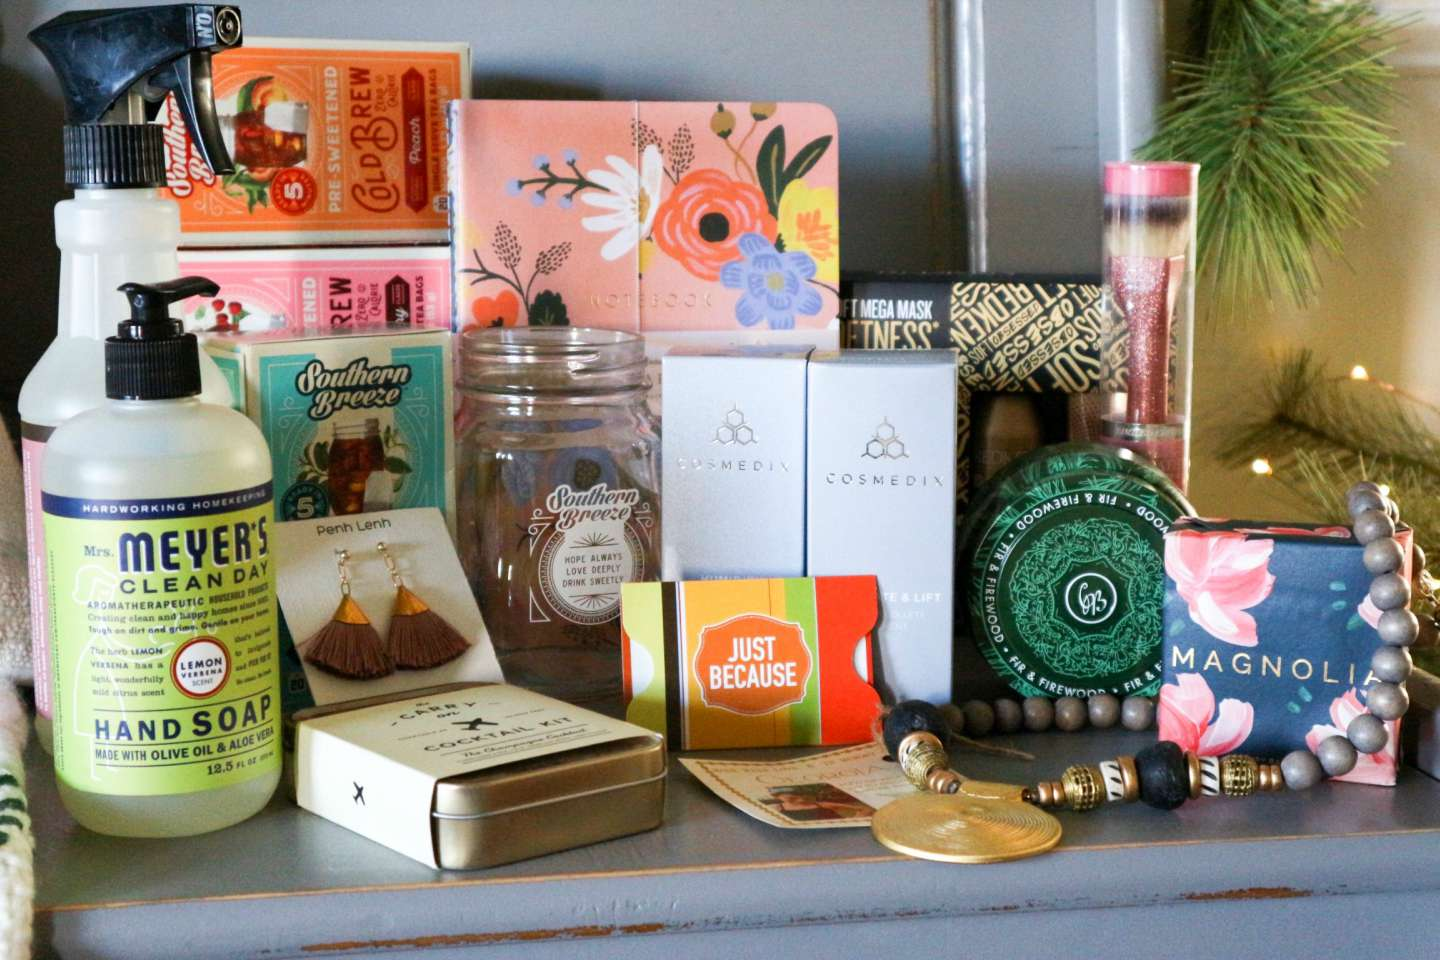 My Favorite Things of 2017 + a Giveaway! - I'm Fixin' To - @mbg0112